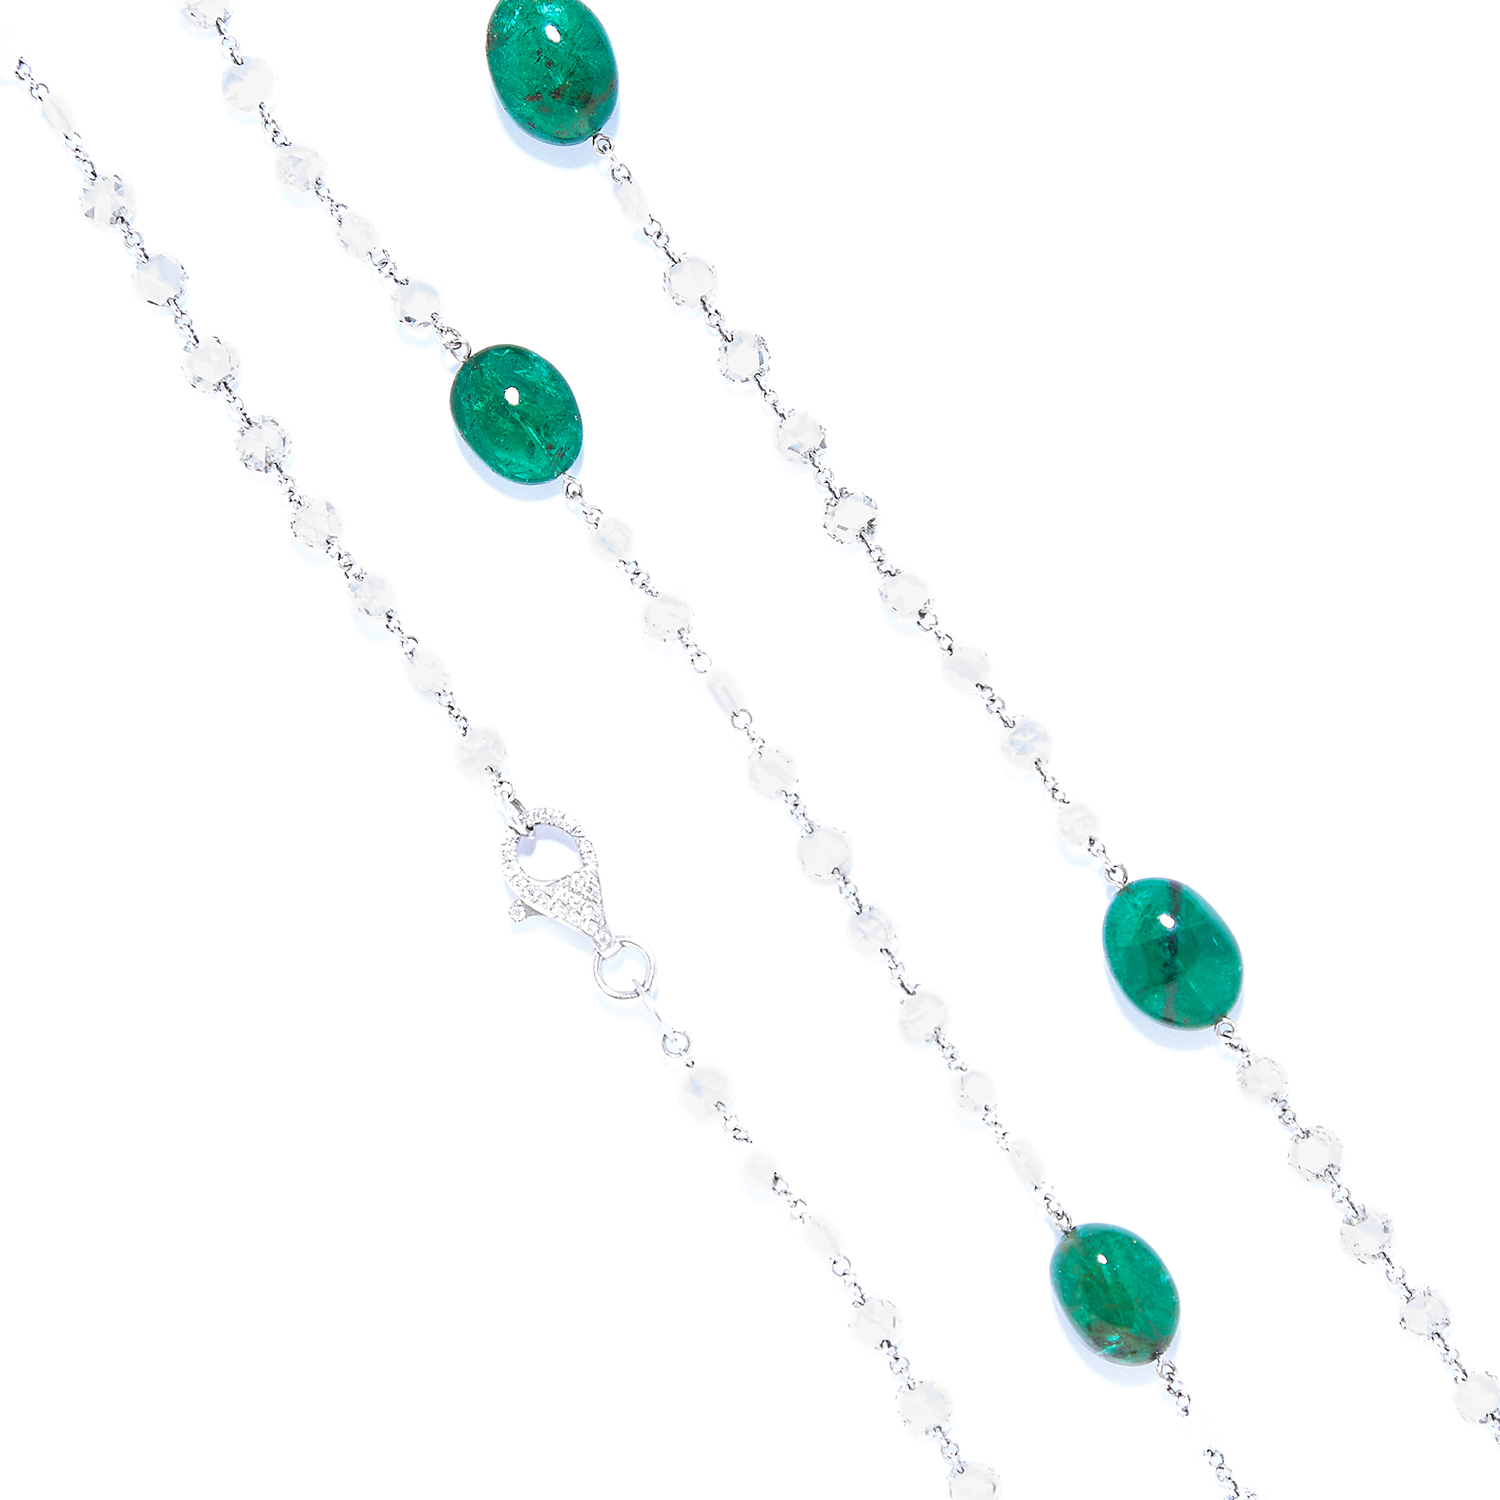 EMERALD AND DIAMOND NECKLACE in 18ct white gold, comprising of alternating polished emerald beads - Bild 3 aus 3